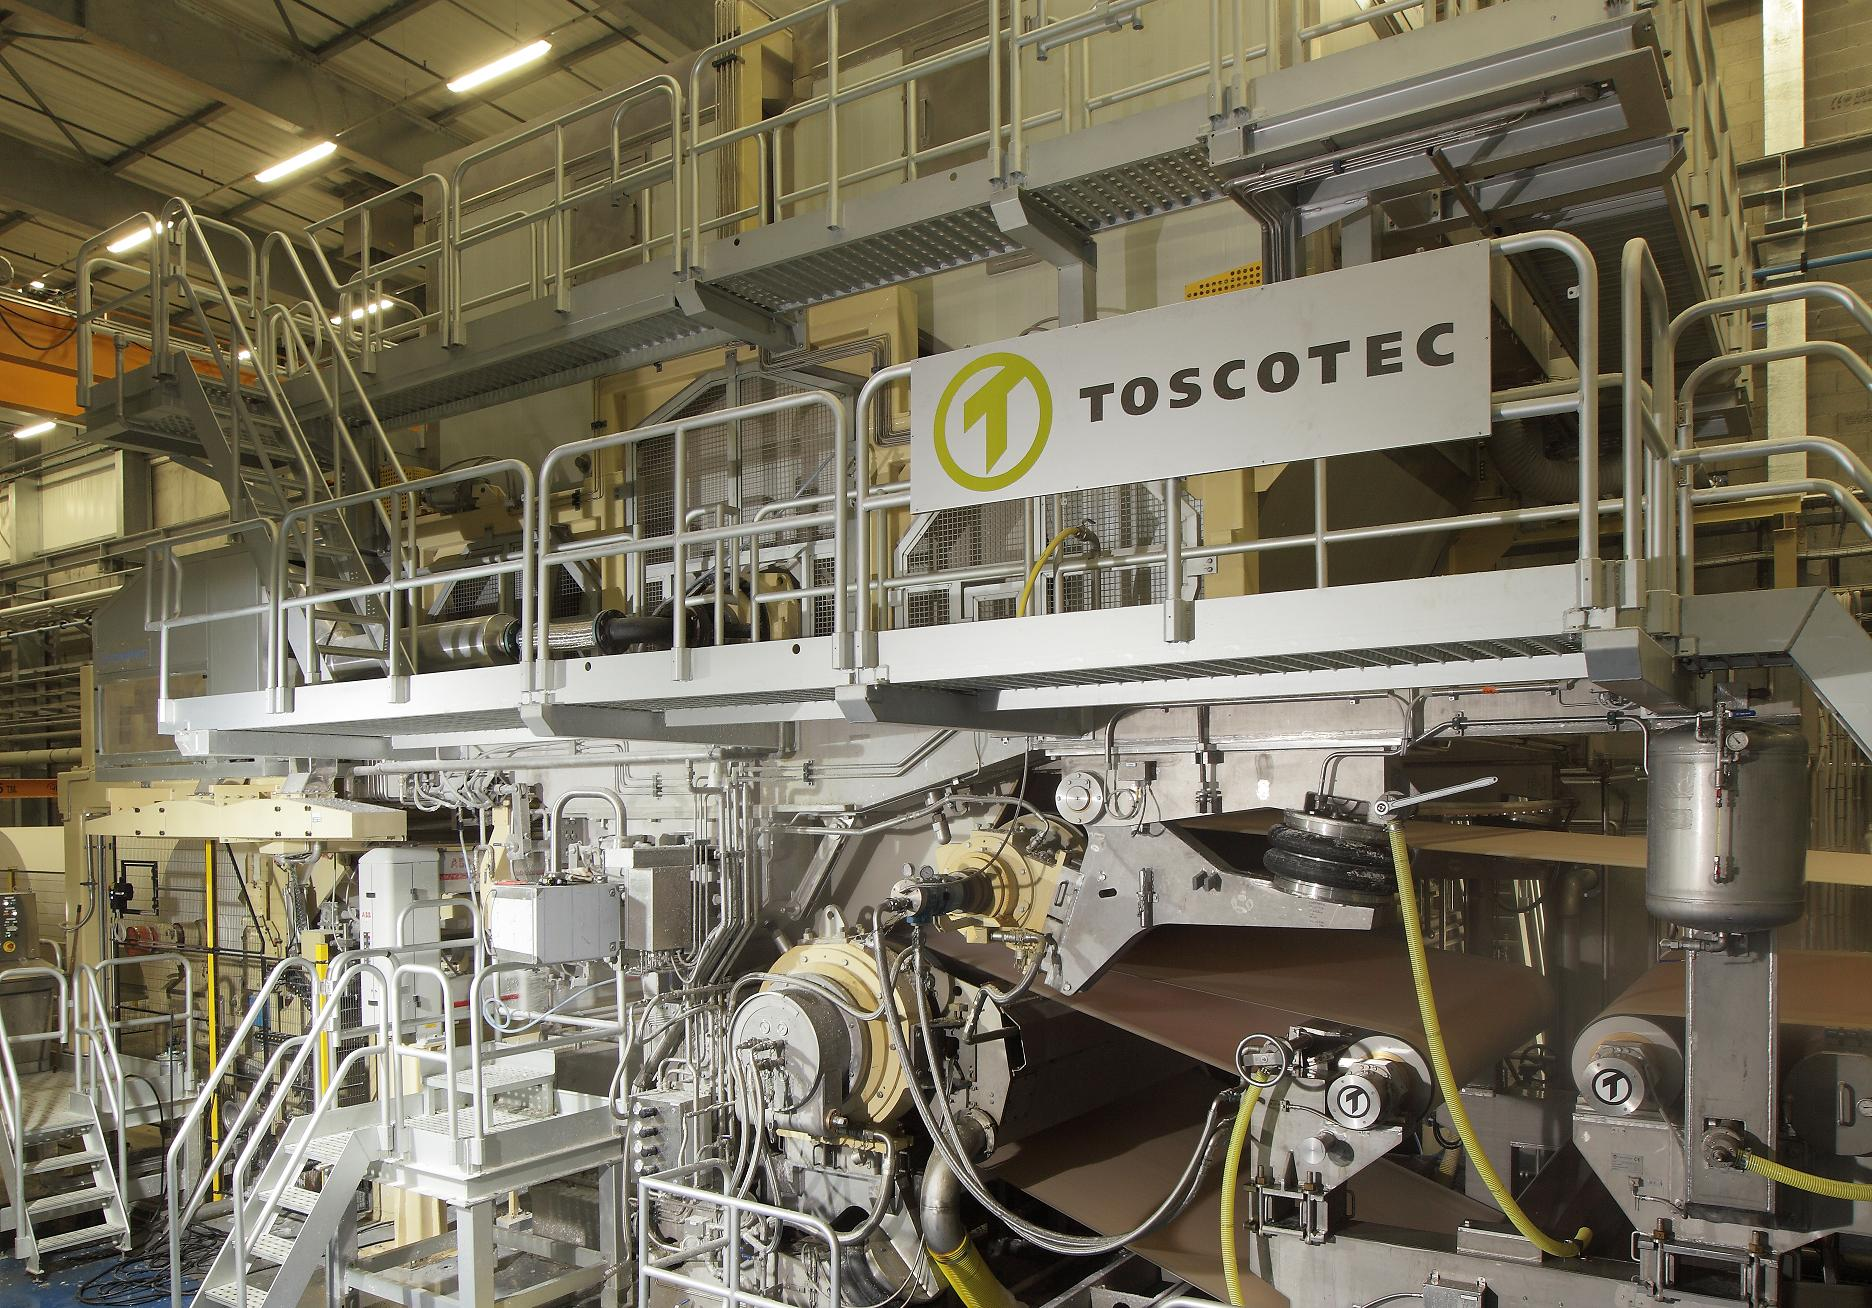 Lithuania's Grigiskes boosts production capacity after investing in the new tissue line